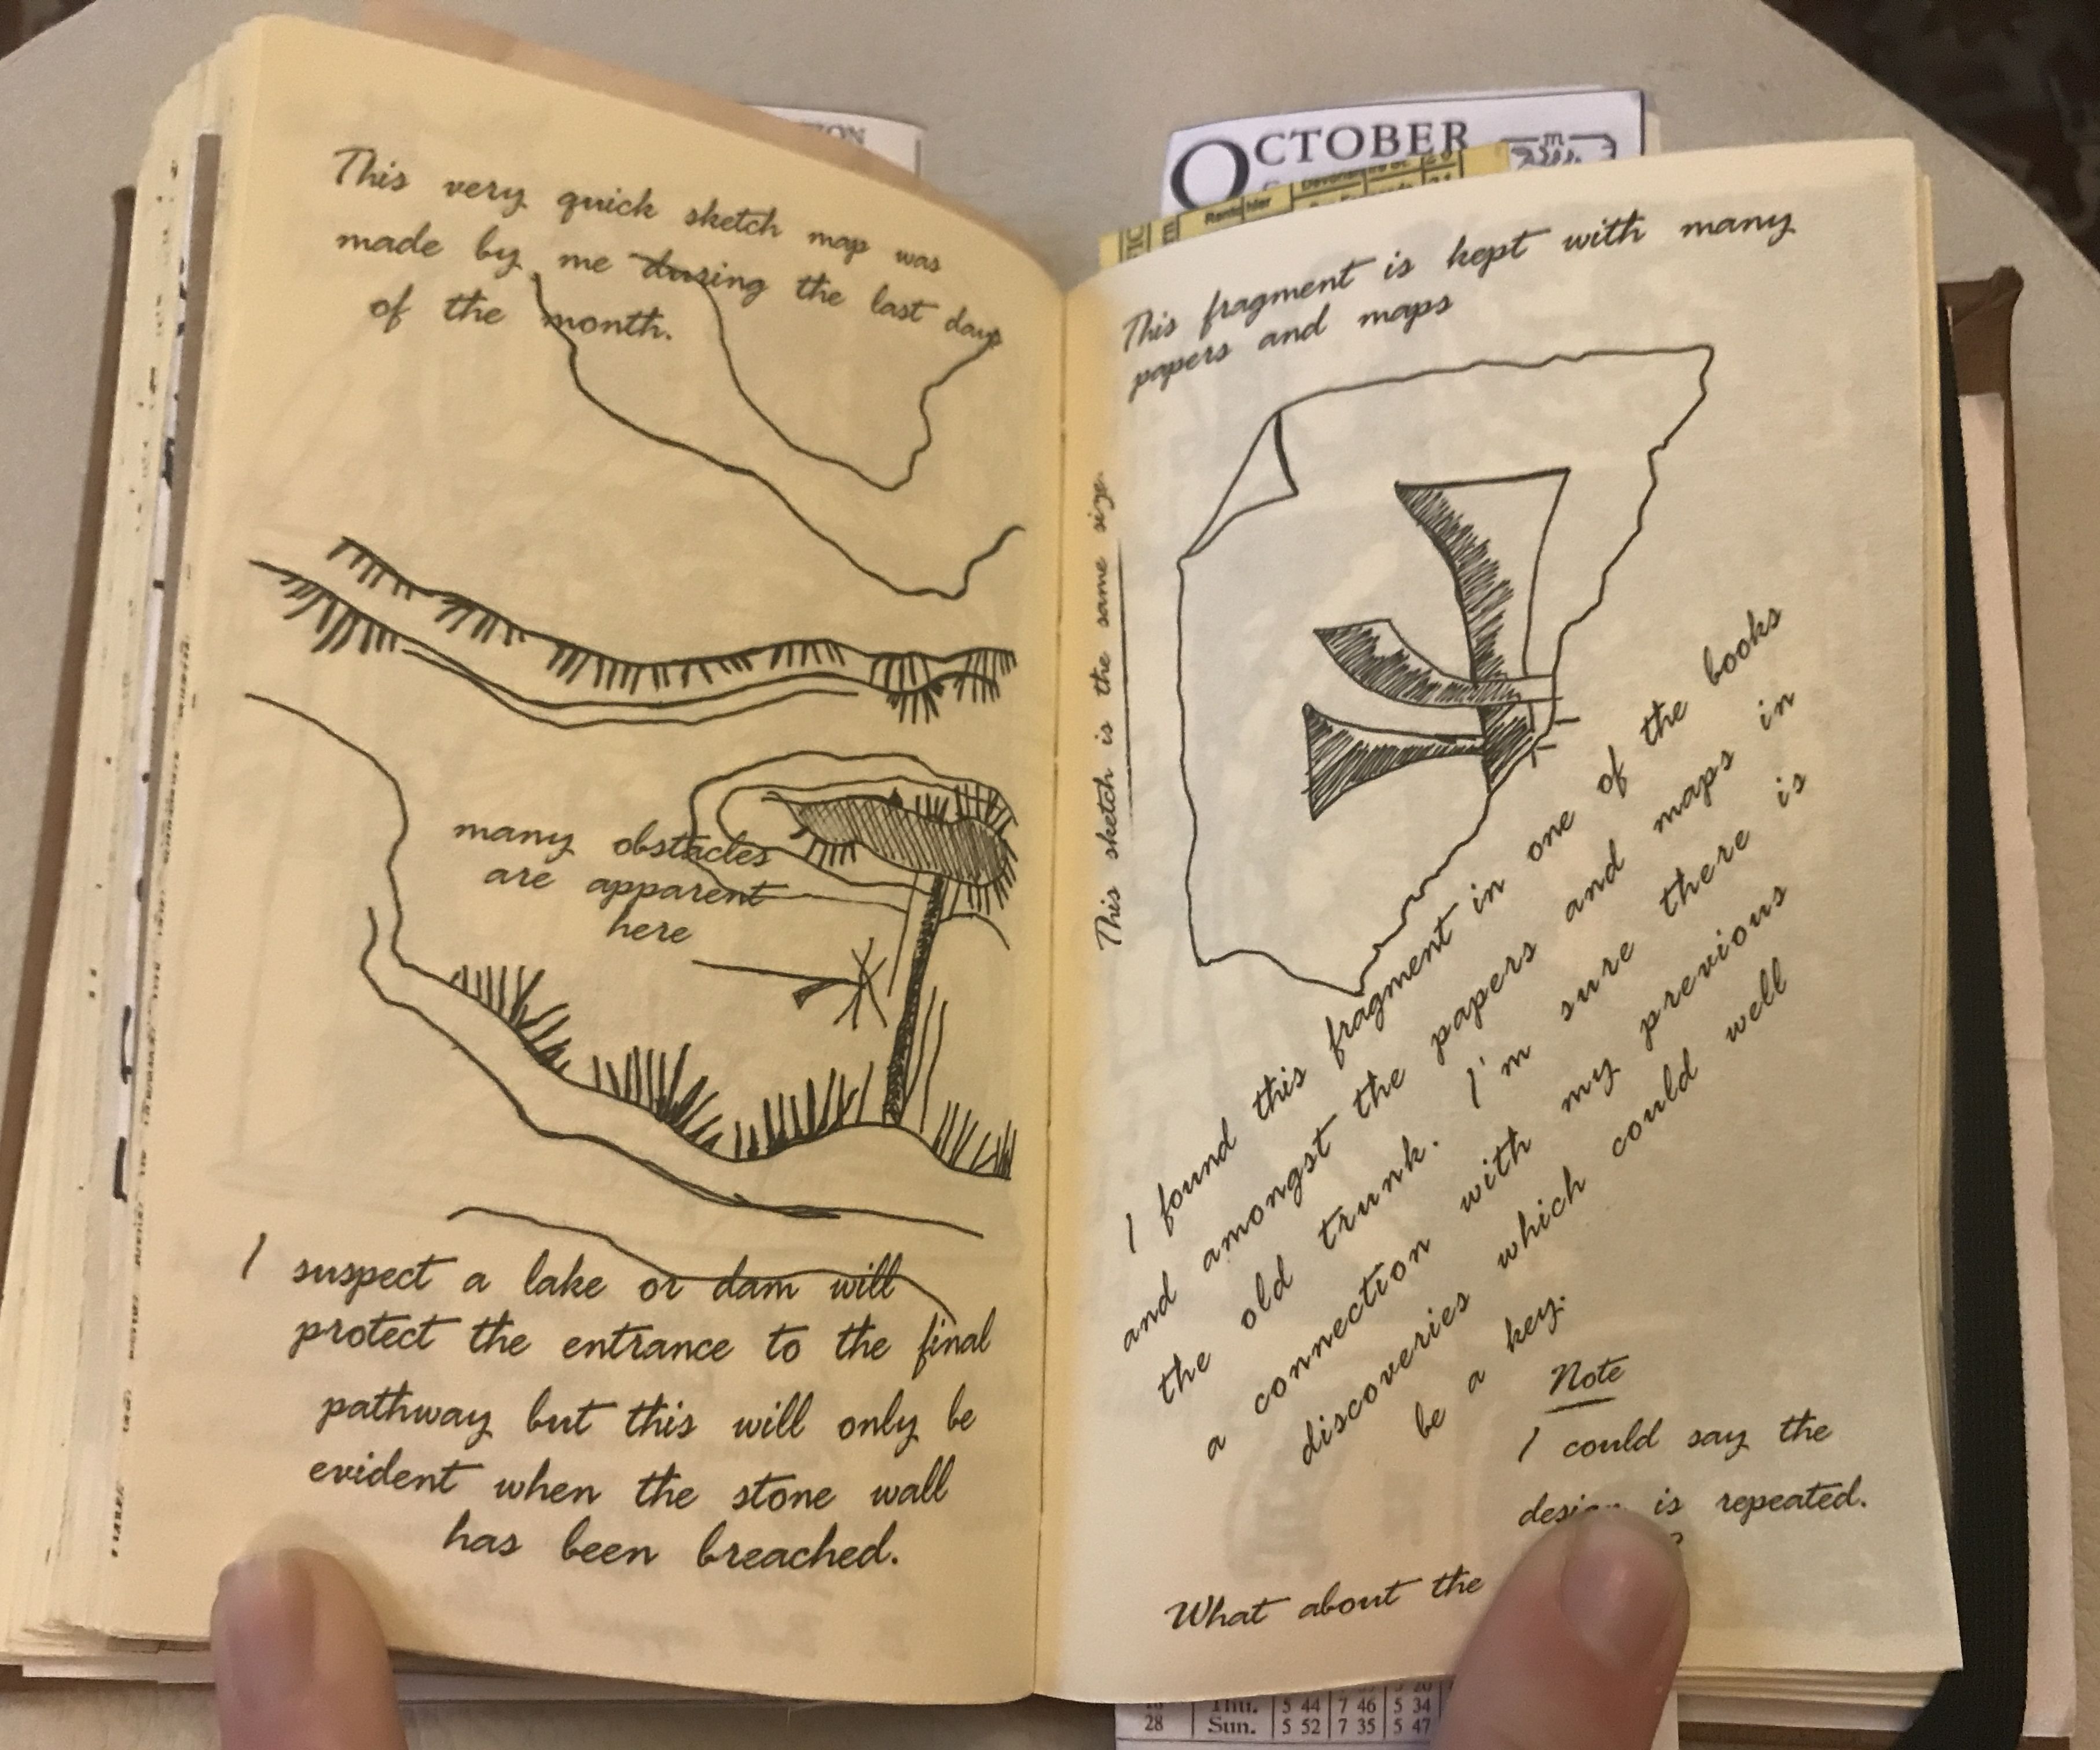 The Grail Diary From Indiana Jones and the Last Crusade